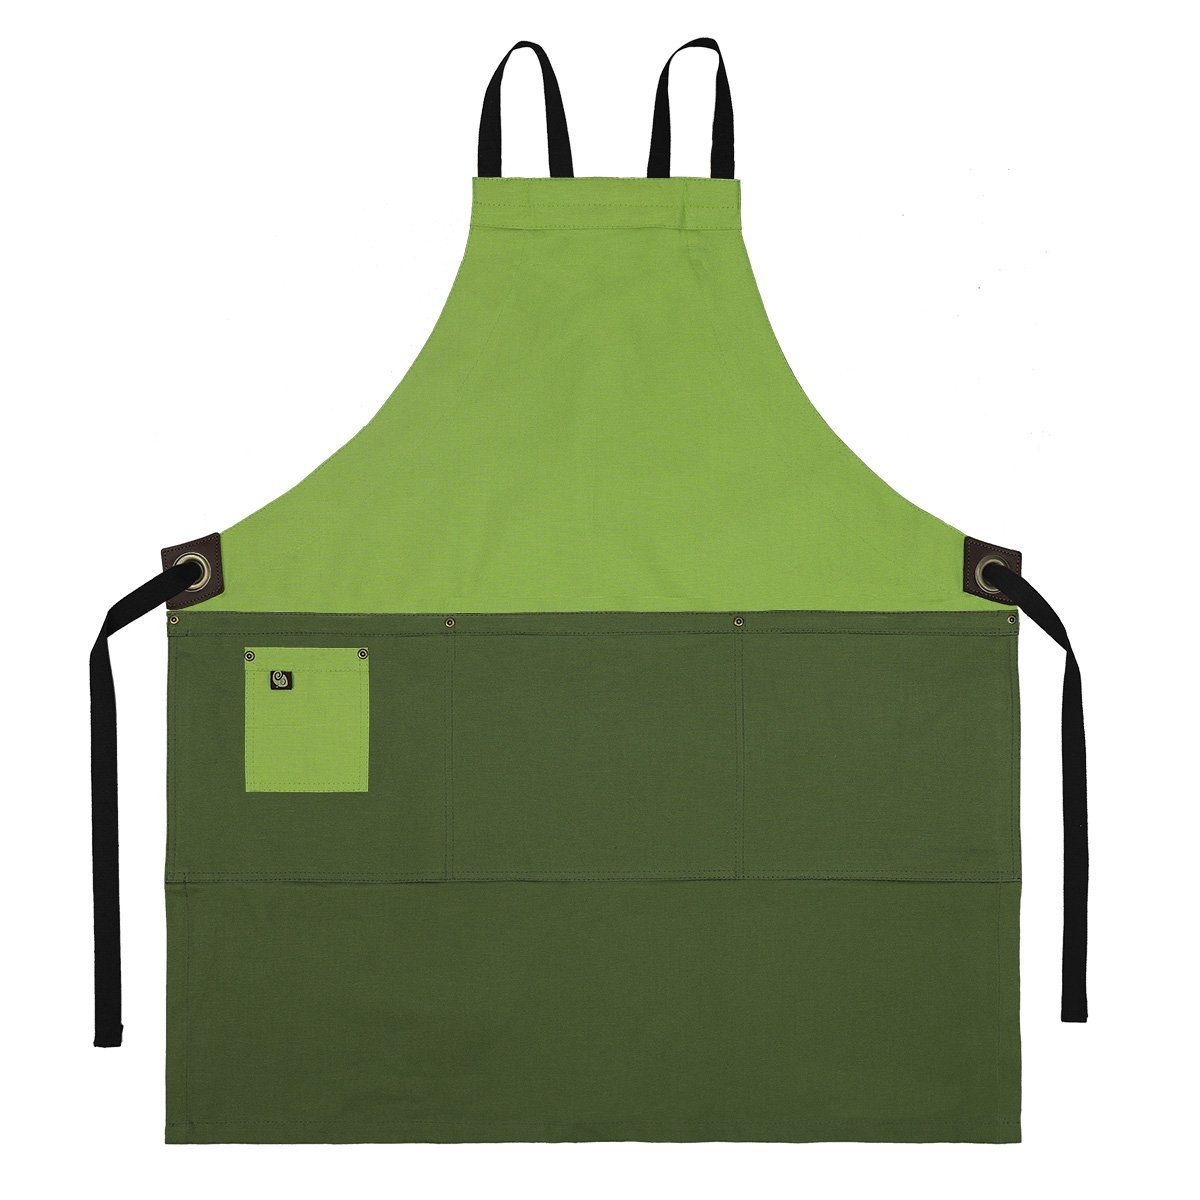 Koda Zelkova Full Bib Apron (Avocado and Fern)